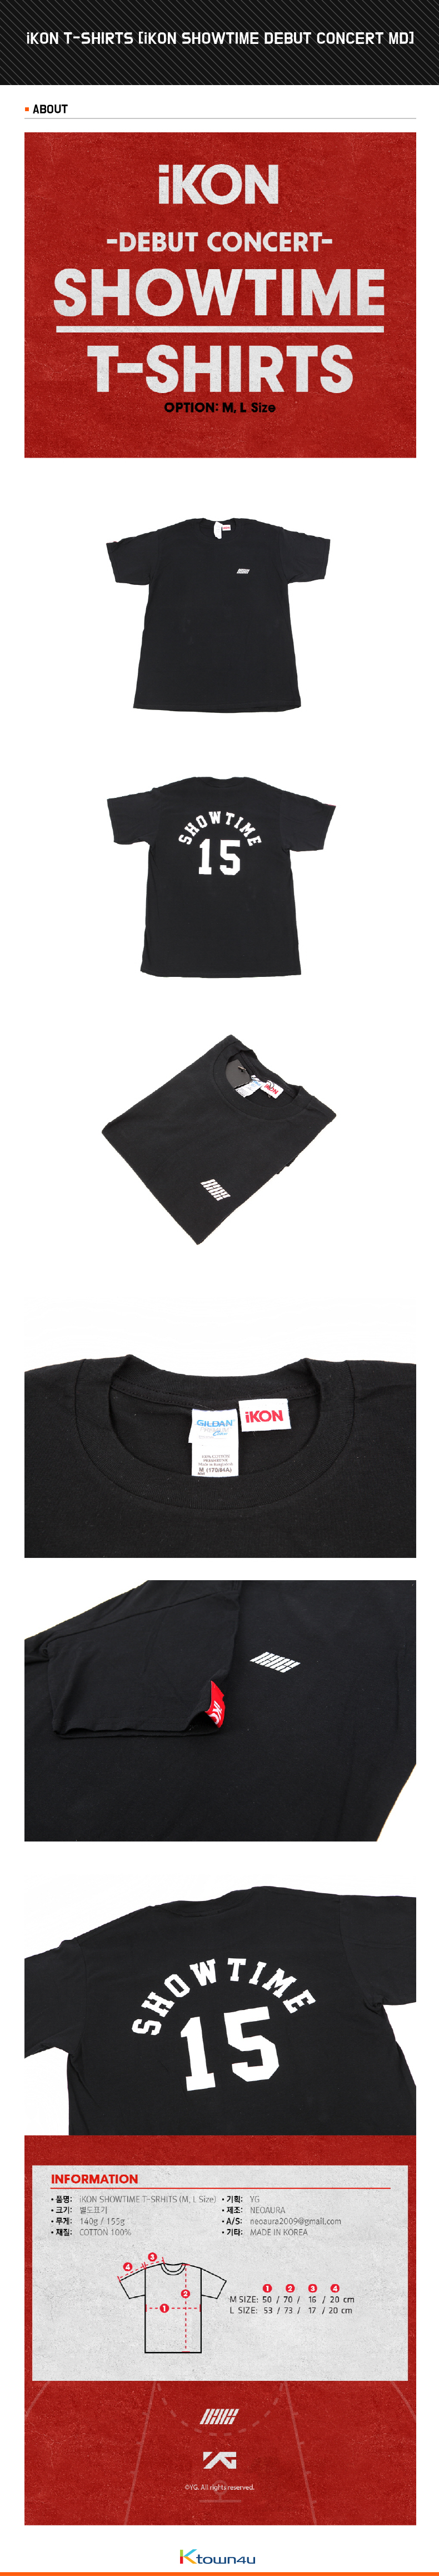 iKON - T-SHIRTS [iKON SHOWTIME DEBUT CONCERT MD]